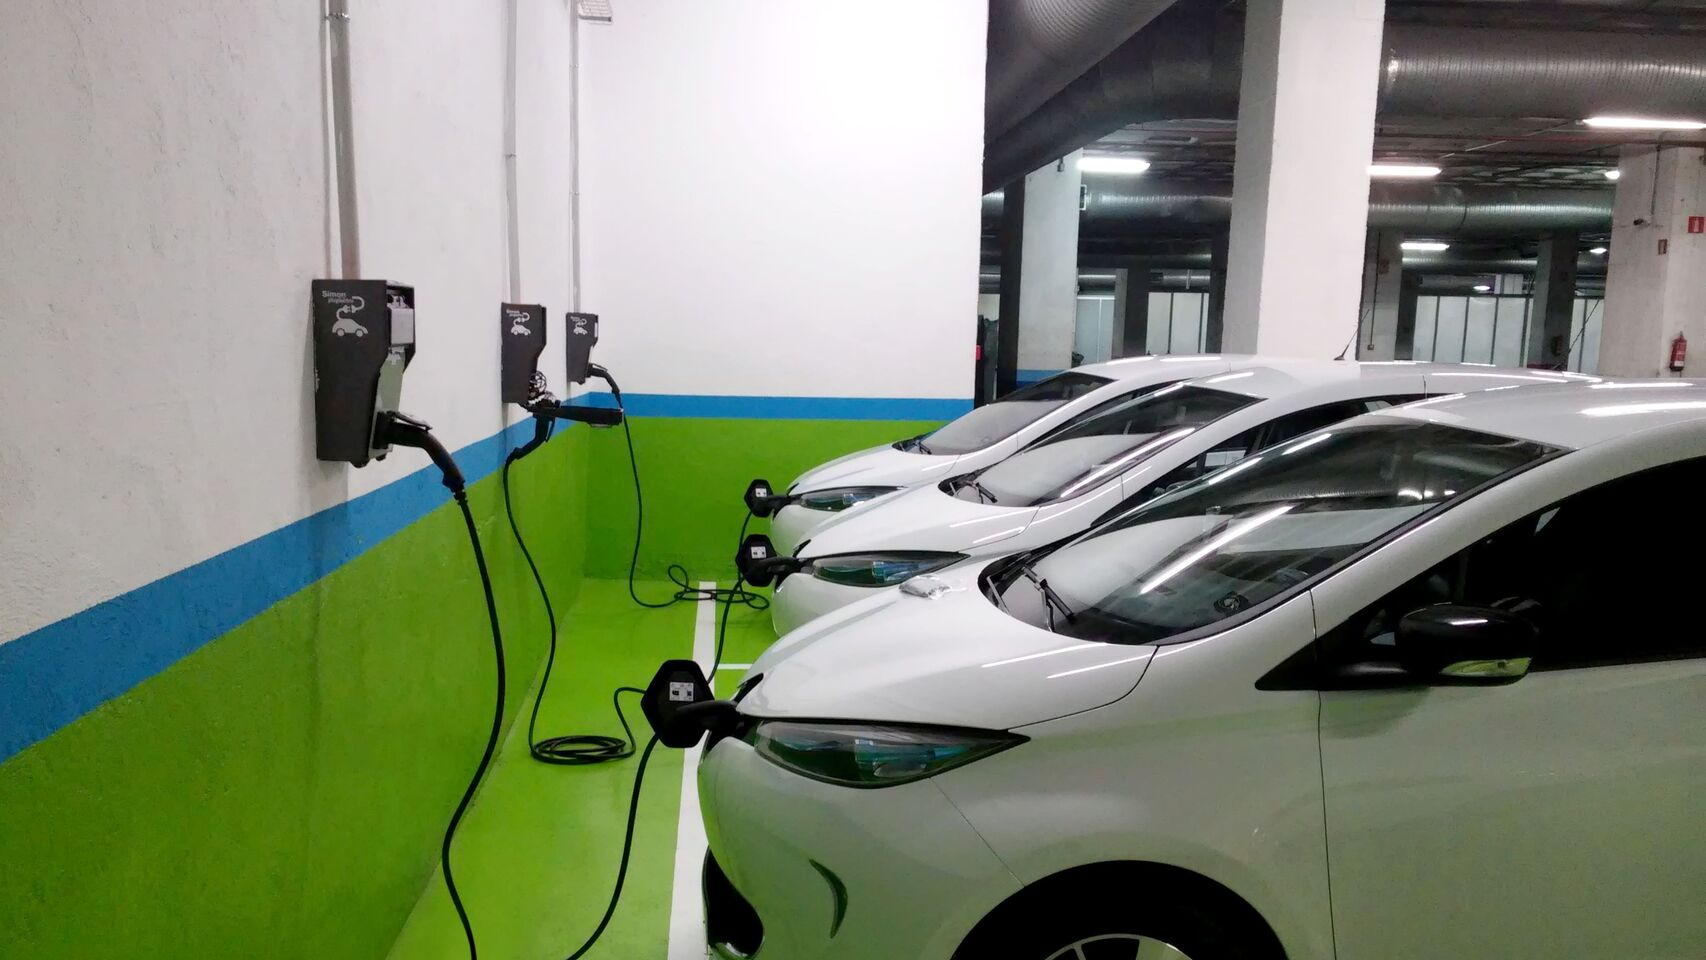 """Selling electric cars was """"a mistake"""", according to the director of Traffic"""